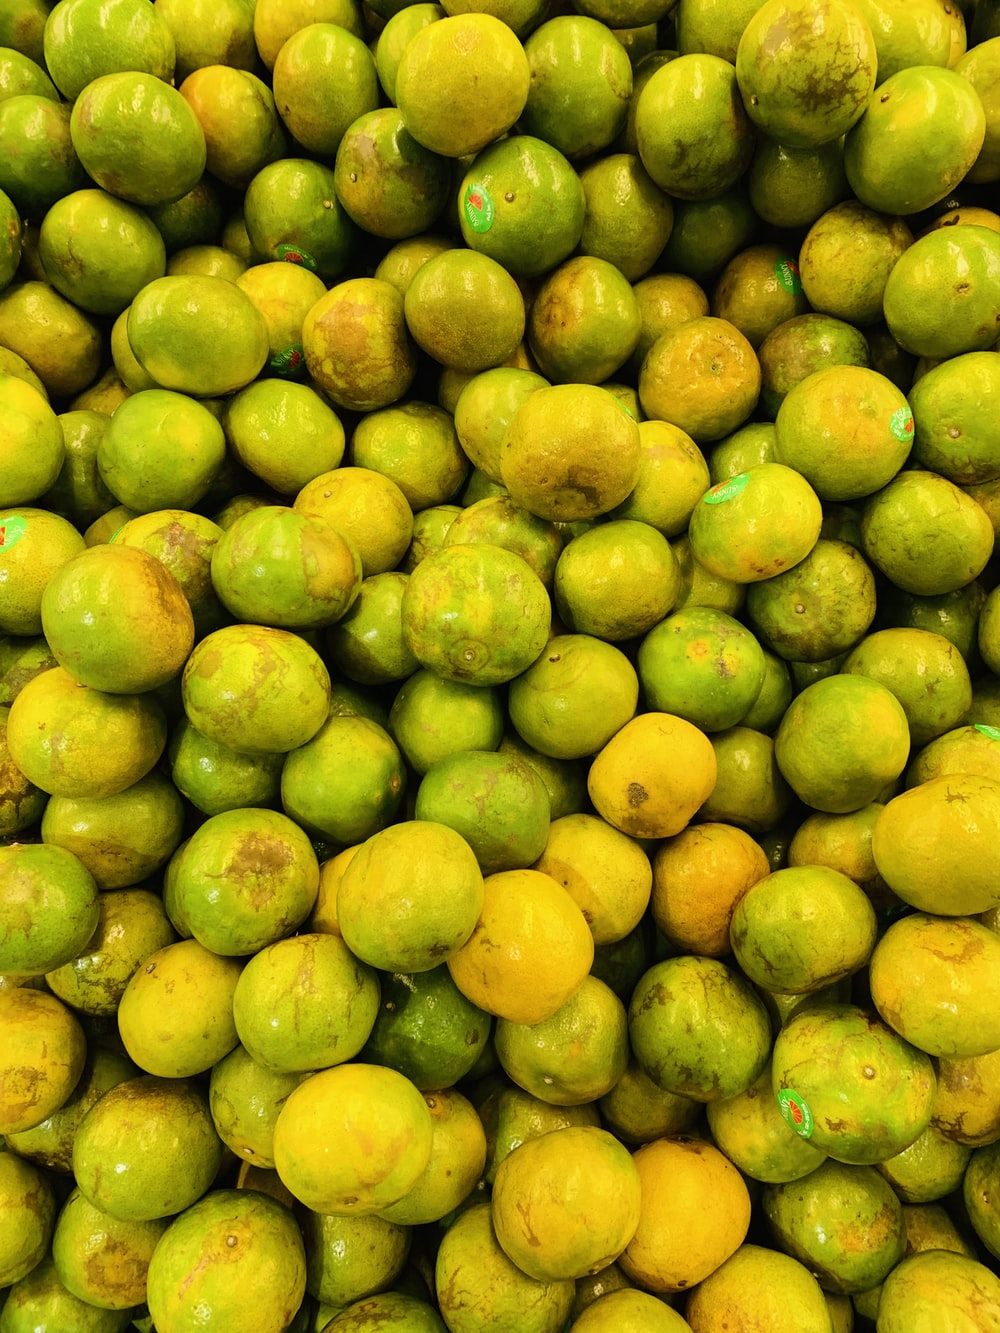 yellow and green oval fruits